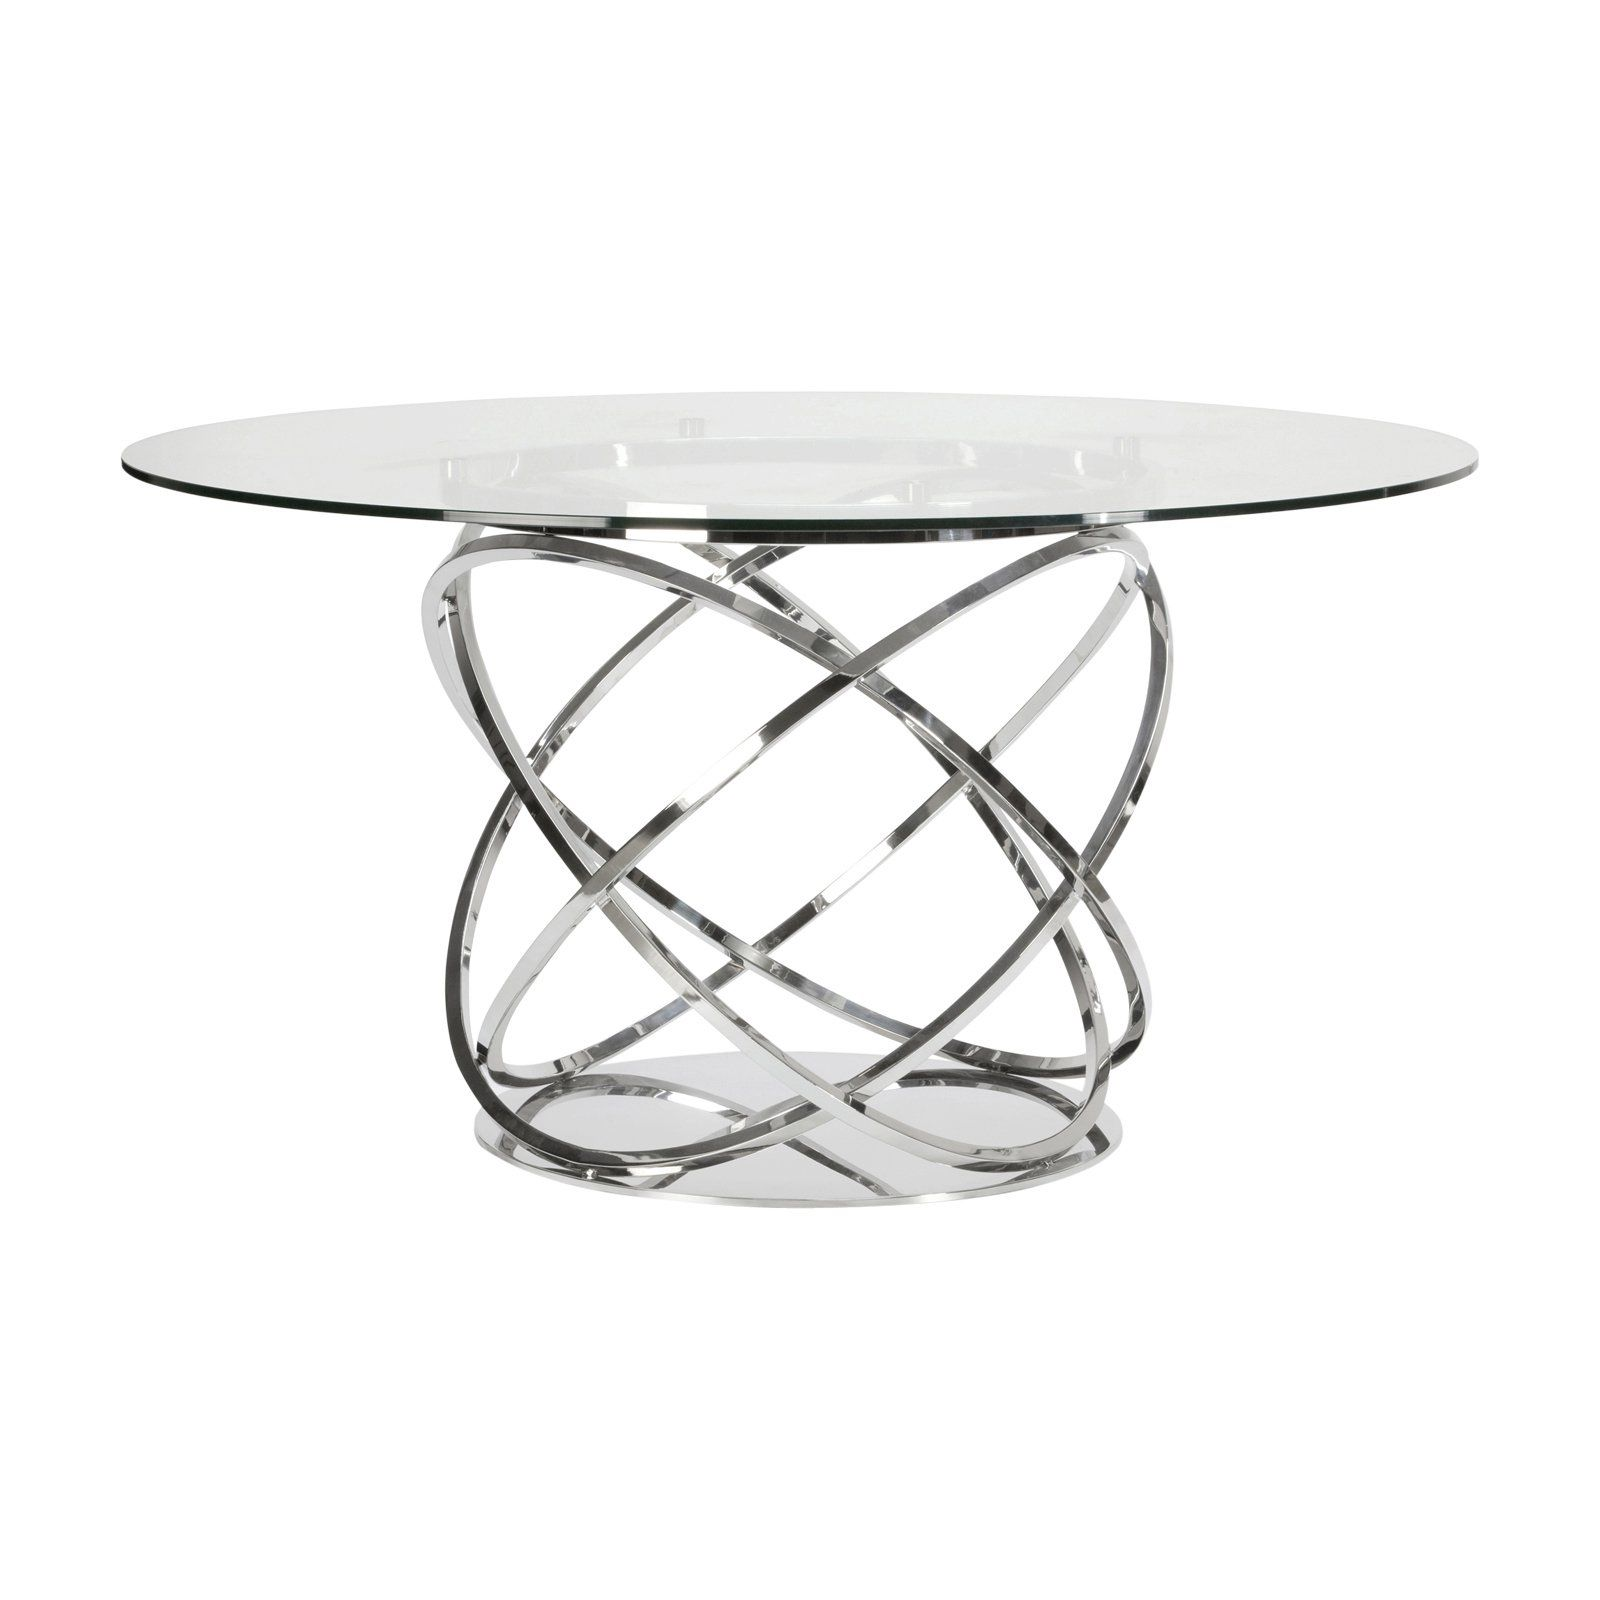 Lievo Orbit Round Dining Table Traditional Dining Tables Metal